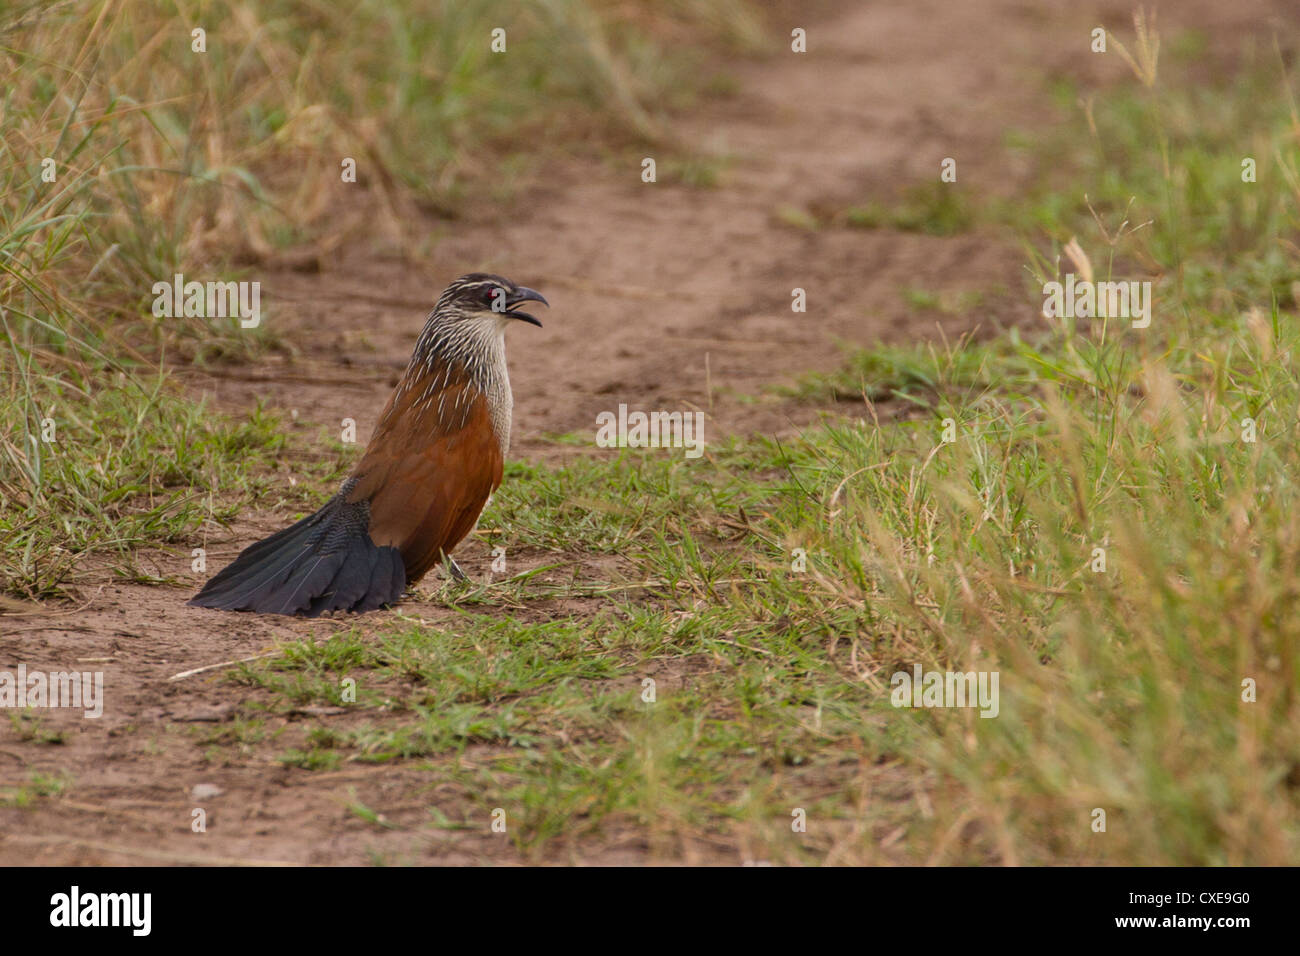 White Browed Coucal (Centropus superciliosus) performing courtship display, Queen Elizabeth National Park, Uganda - Stock Image